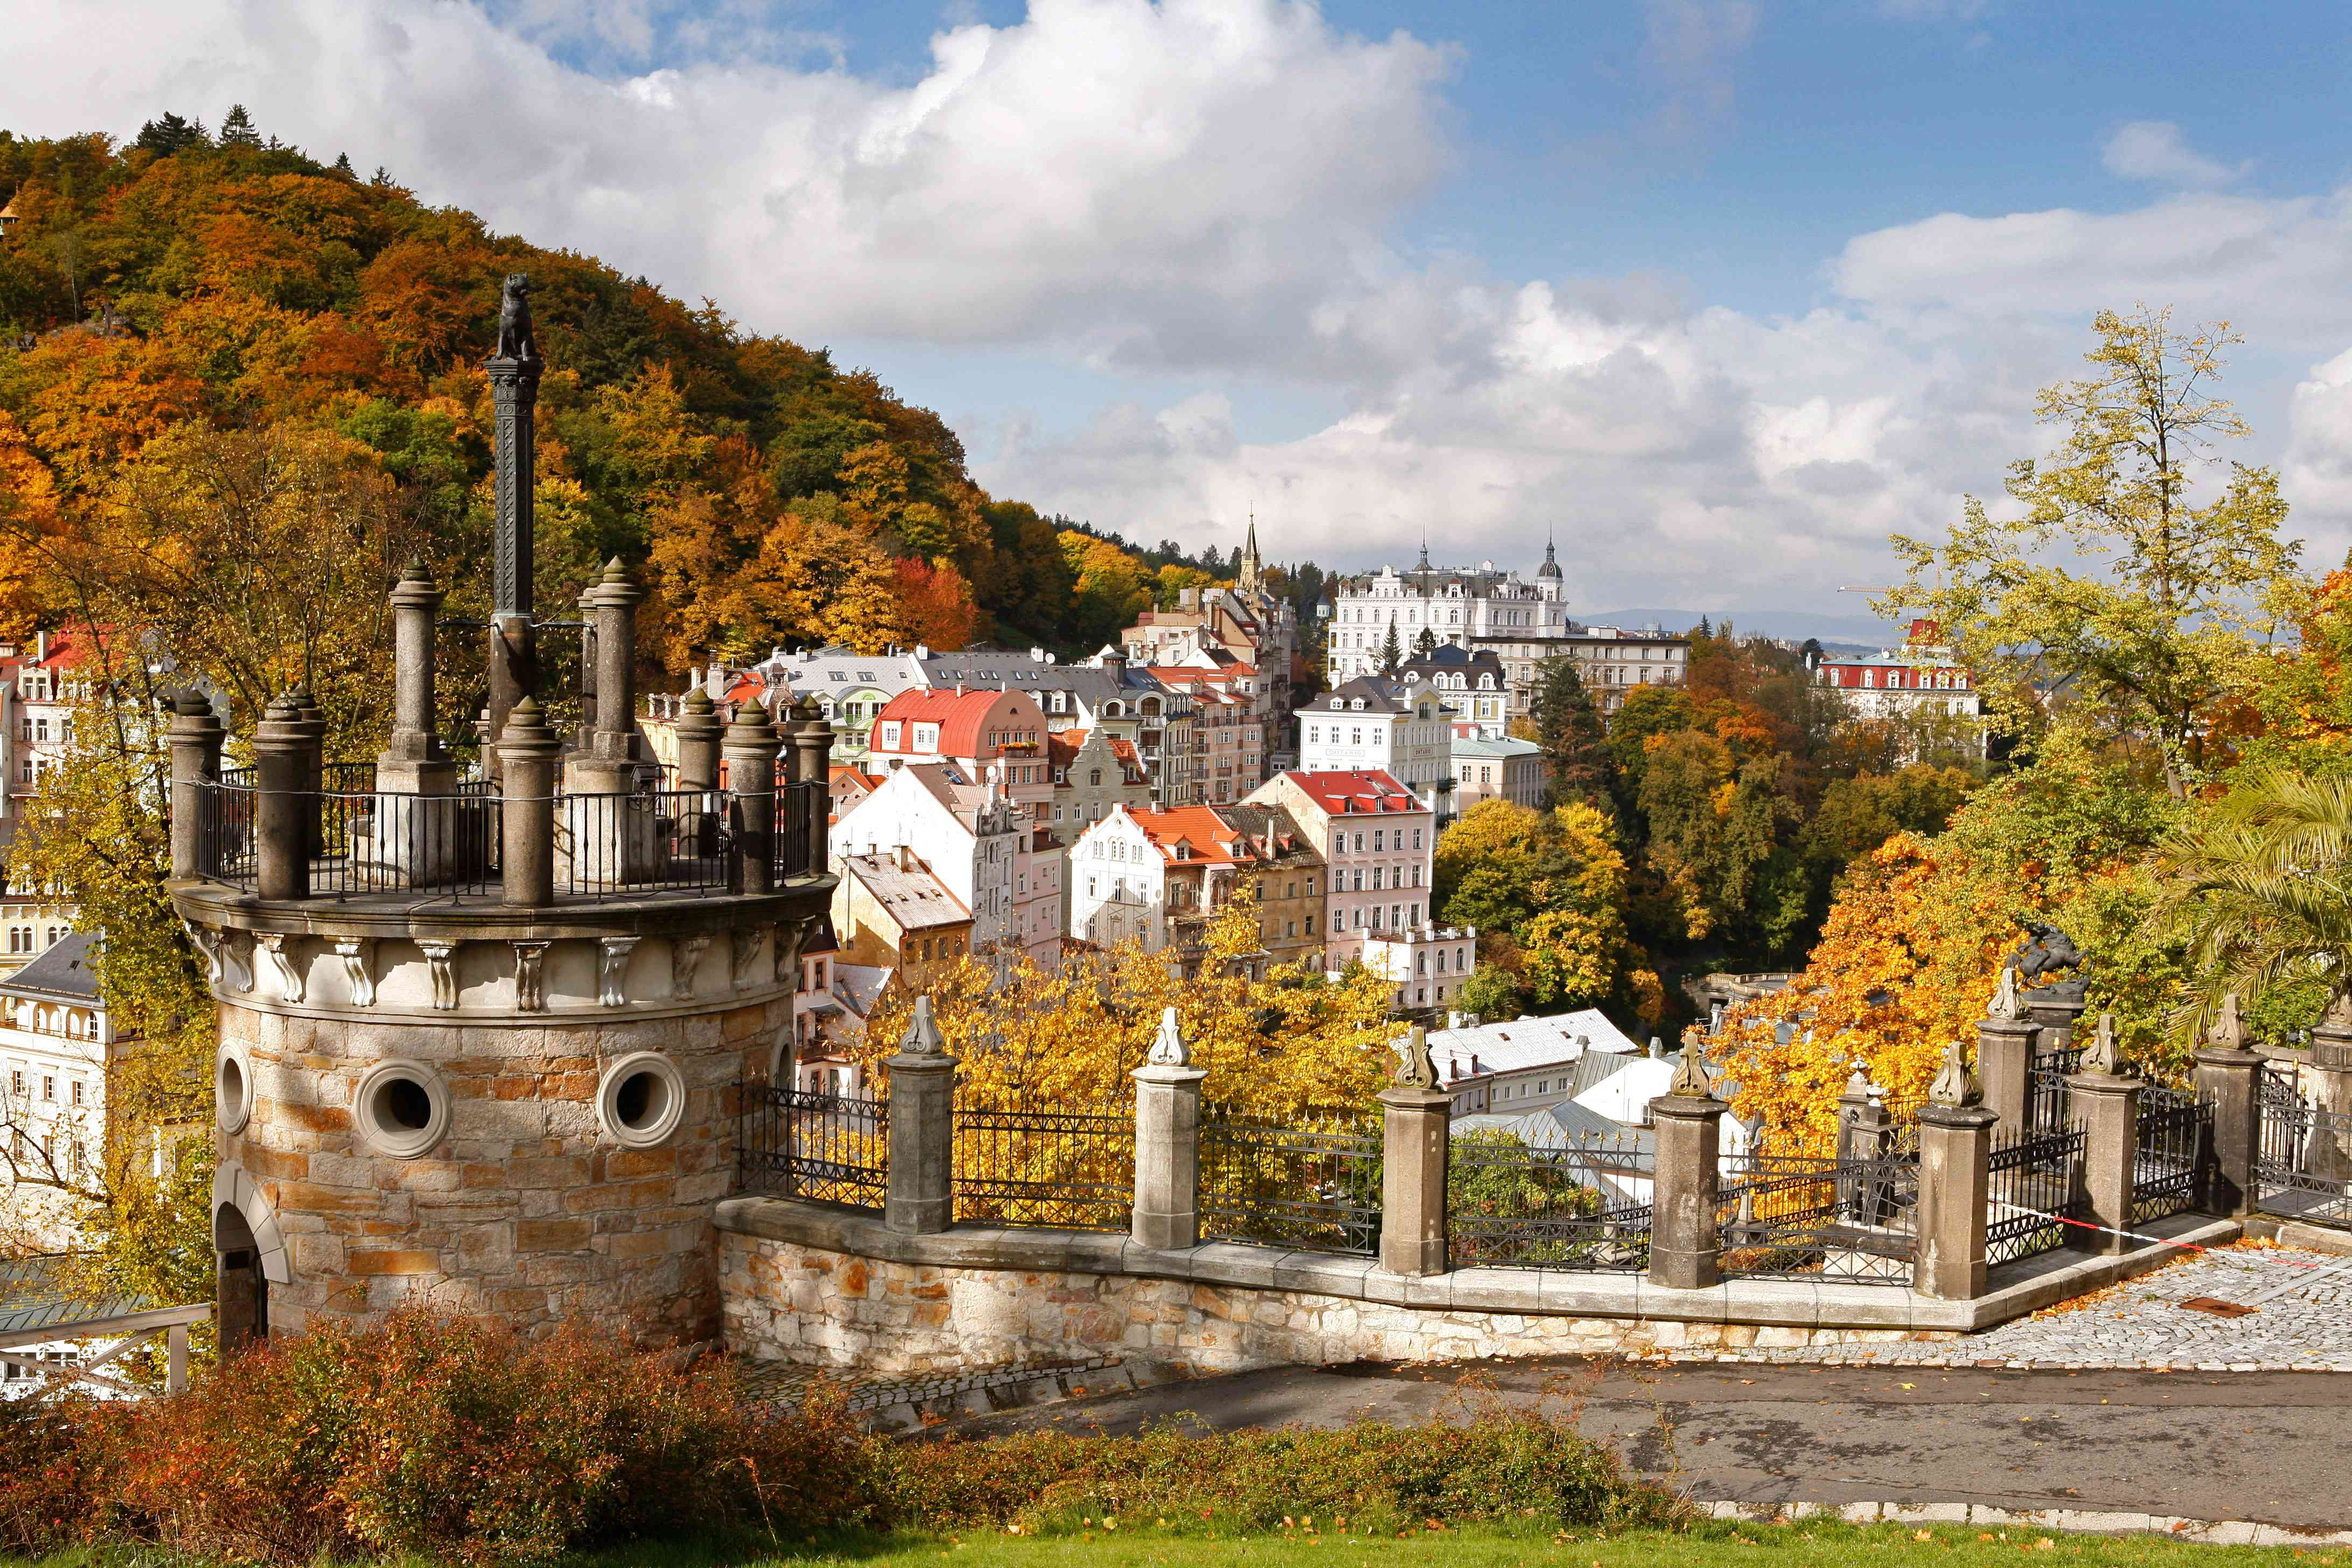 View of cityscape of Karlovy Vary, Czech Republic in autumn